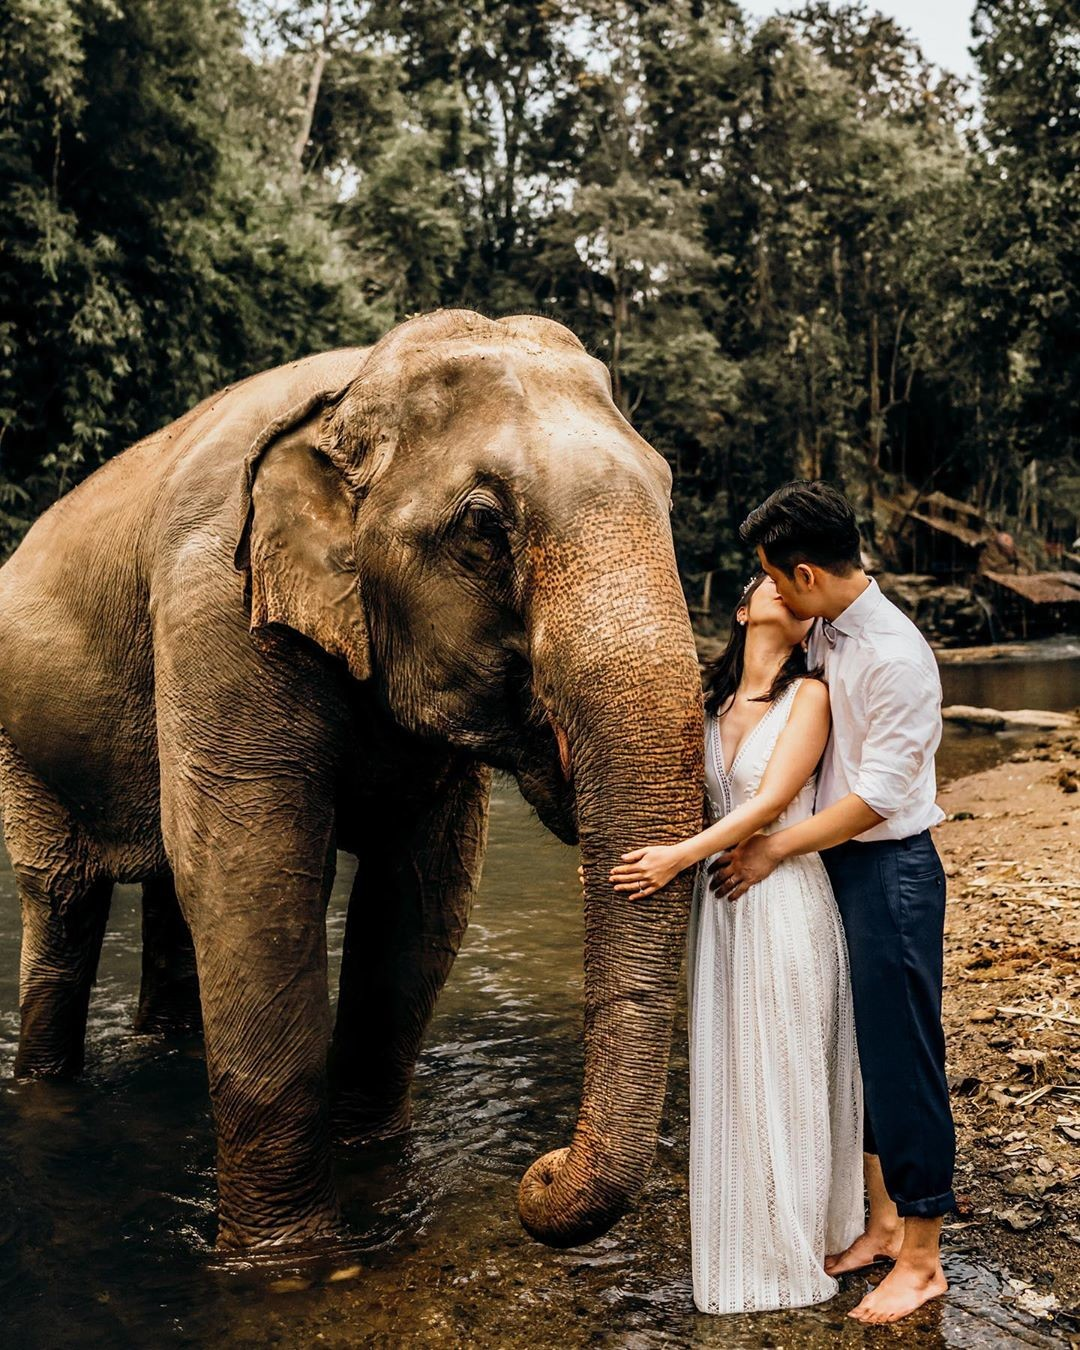 Lenore has a clear vision of her dream wedding photos with elephant in Chiangmai. So when she came to us, she shared her expectations